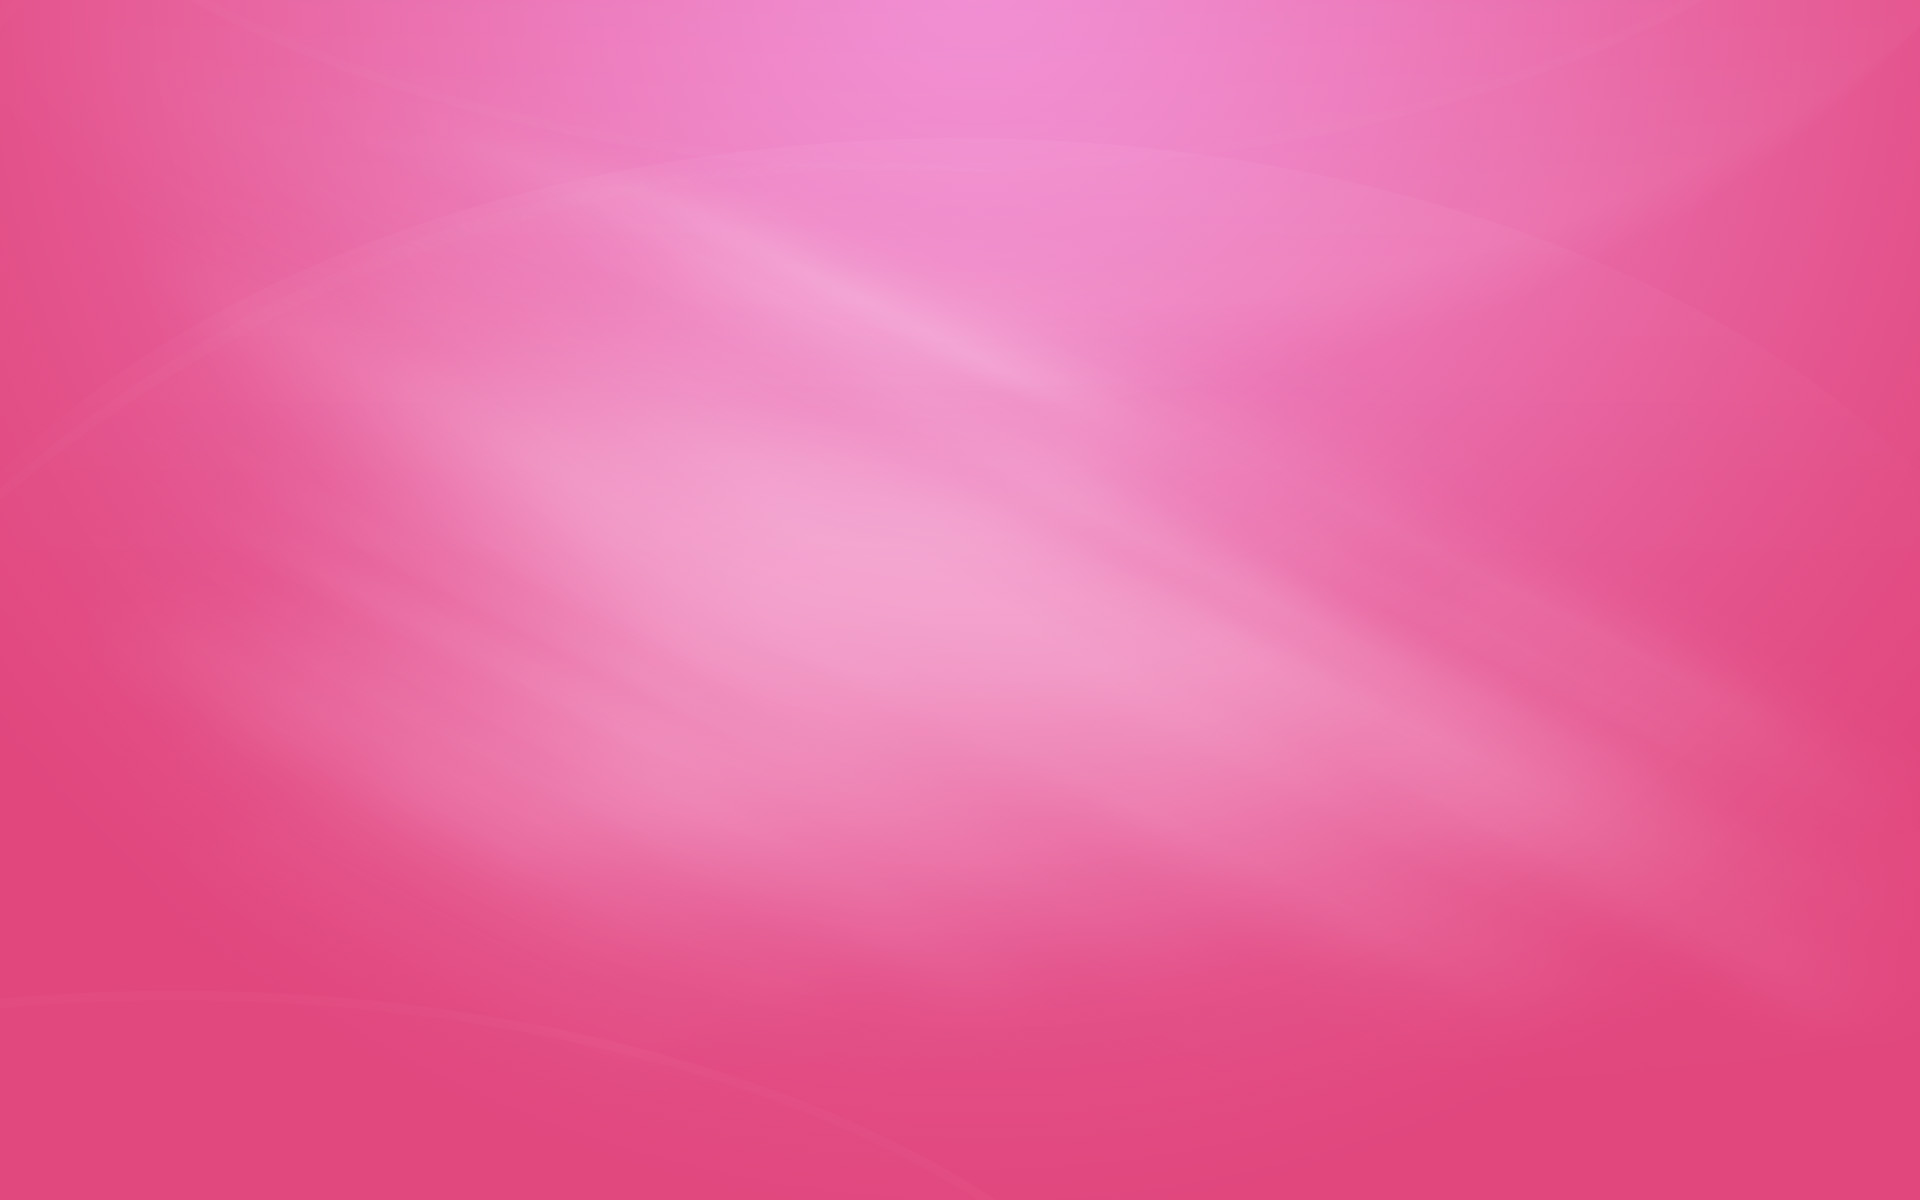 70 Pink Mac Wallpaper On Wallpapersafari Find the large collection of 43000+ pink background images on pngtree. 70 pink mac wallpaper on wallpapersafari